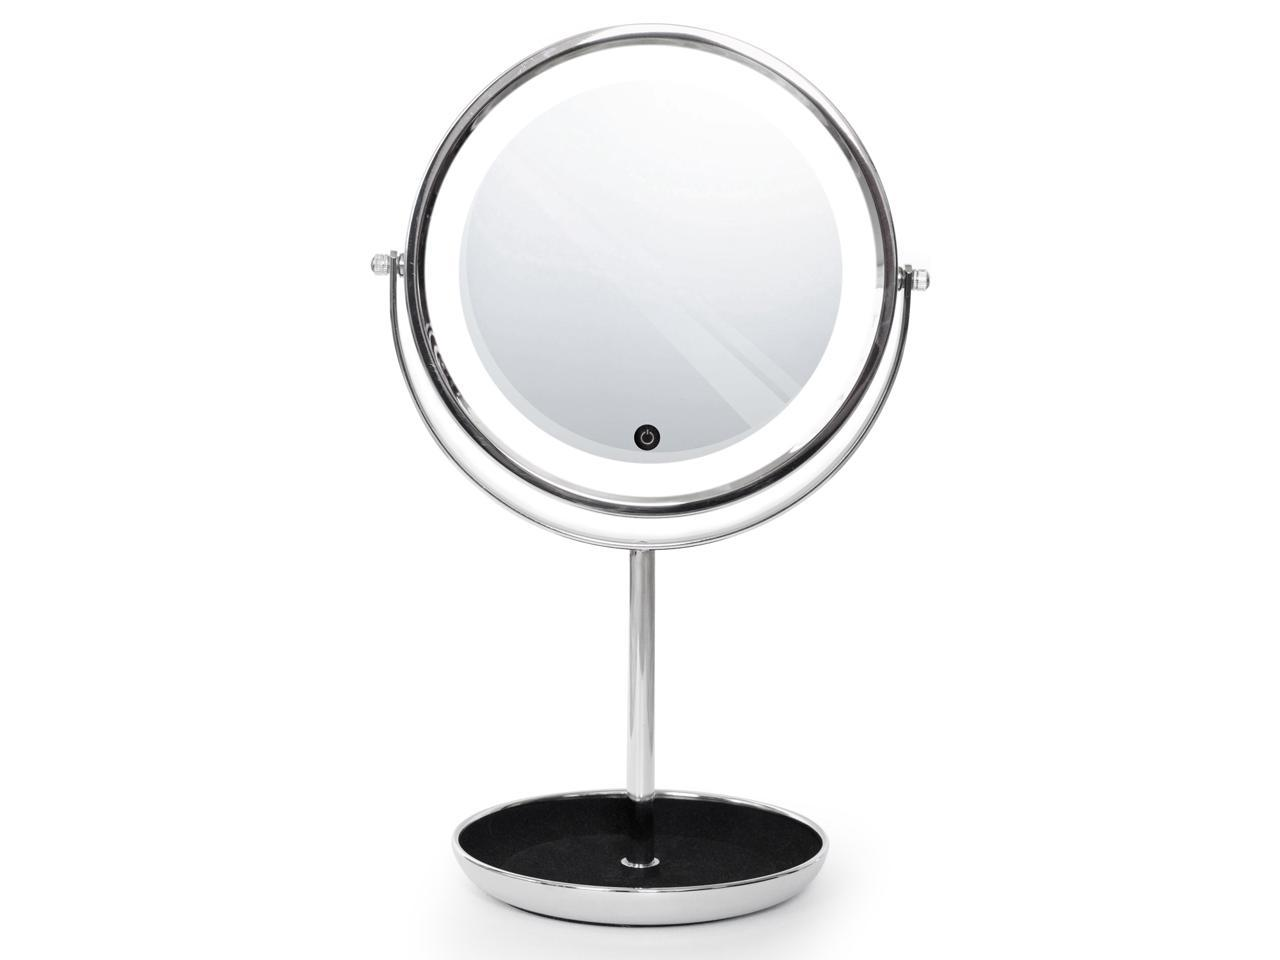 ToiletTree Products Countertop LED Lighted Makeup Mirror